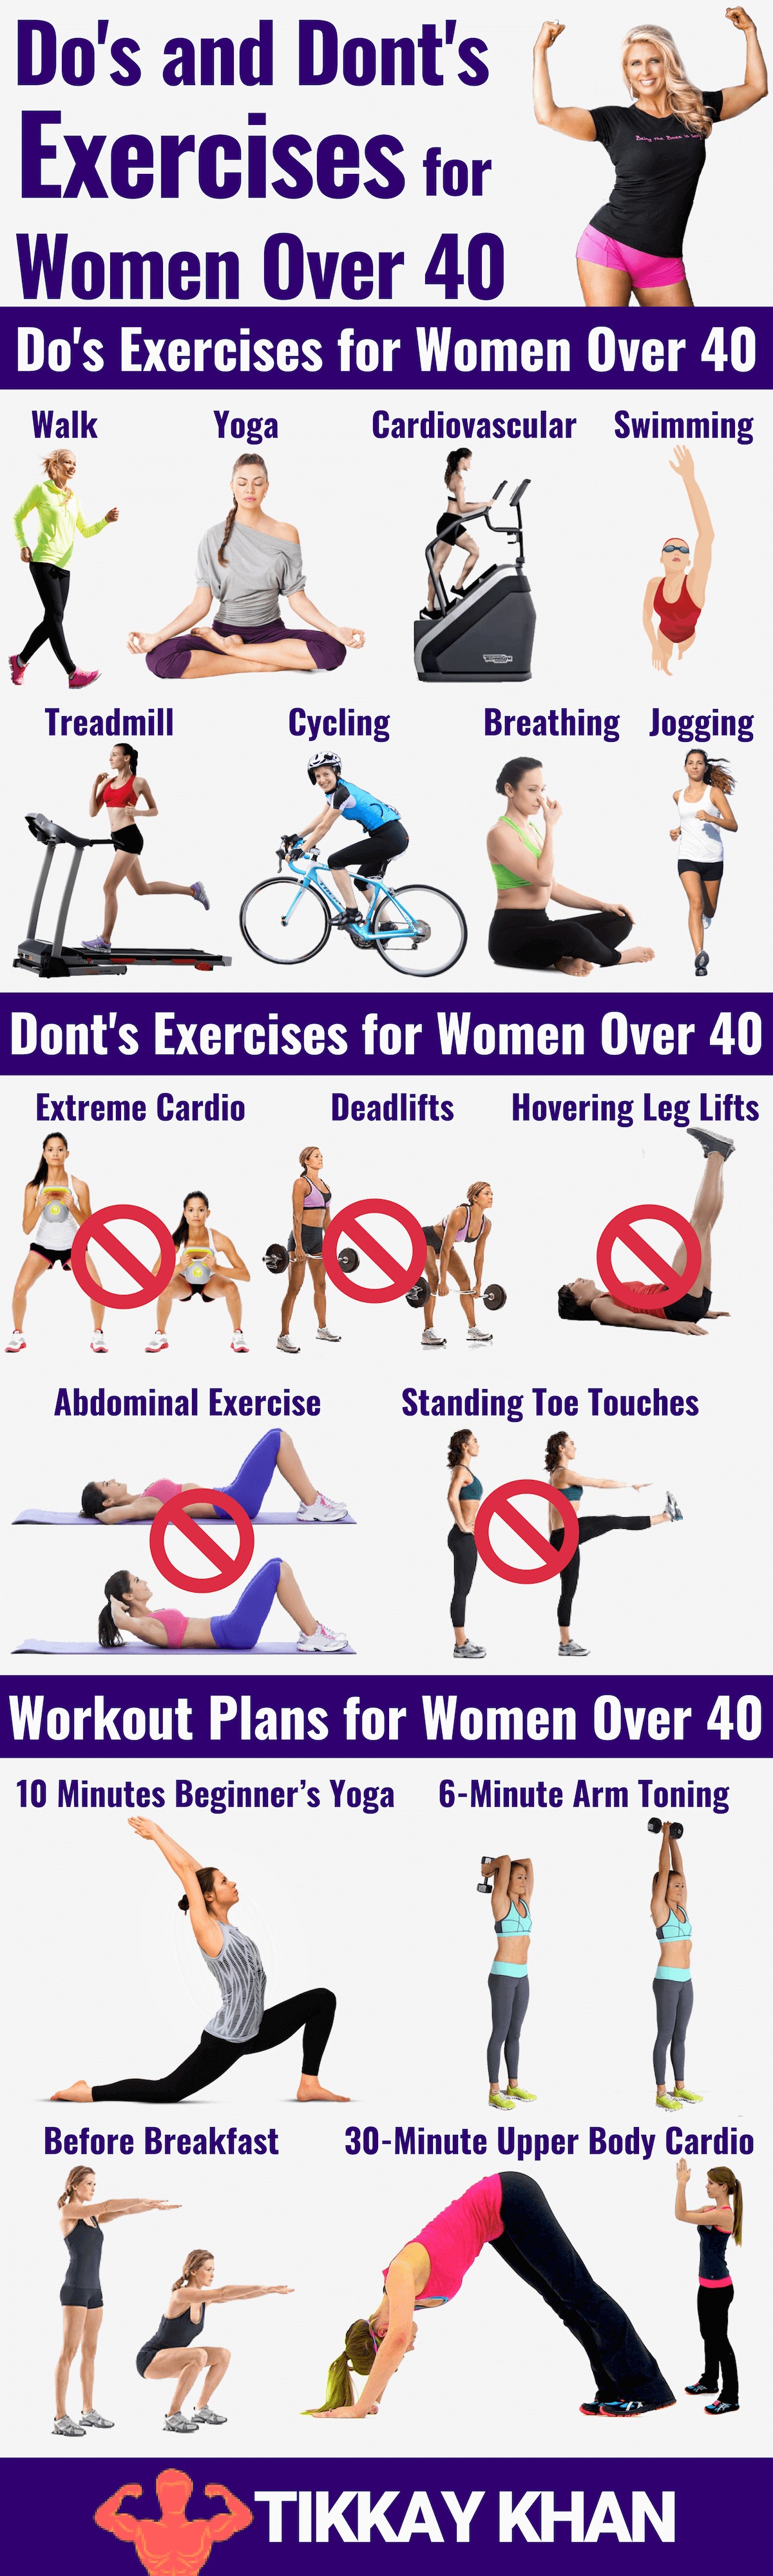 Exercises for Women Over 40 Infographic